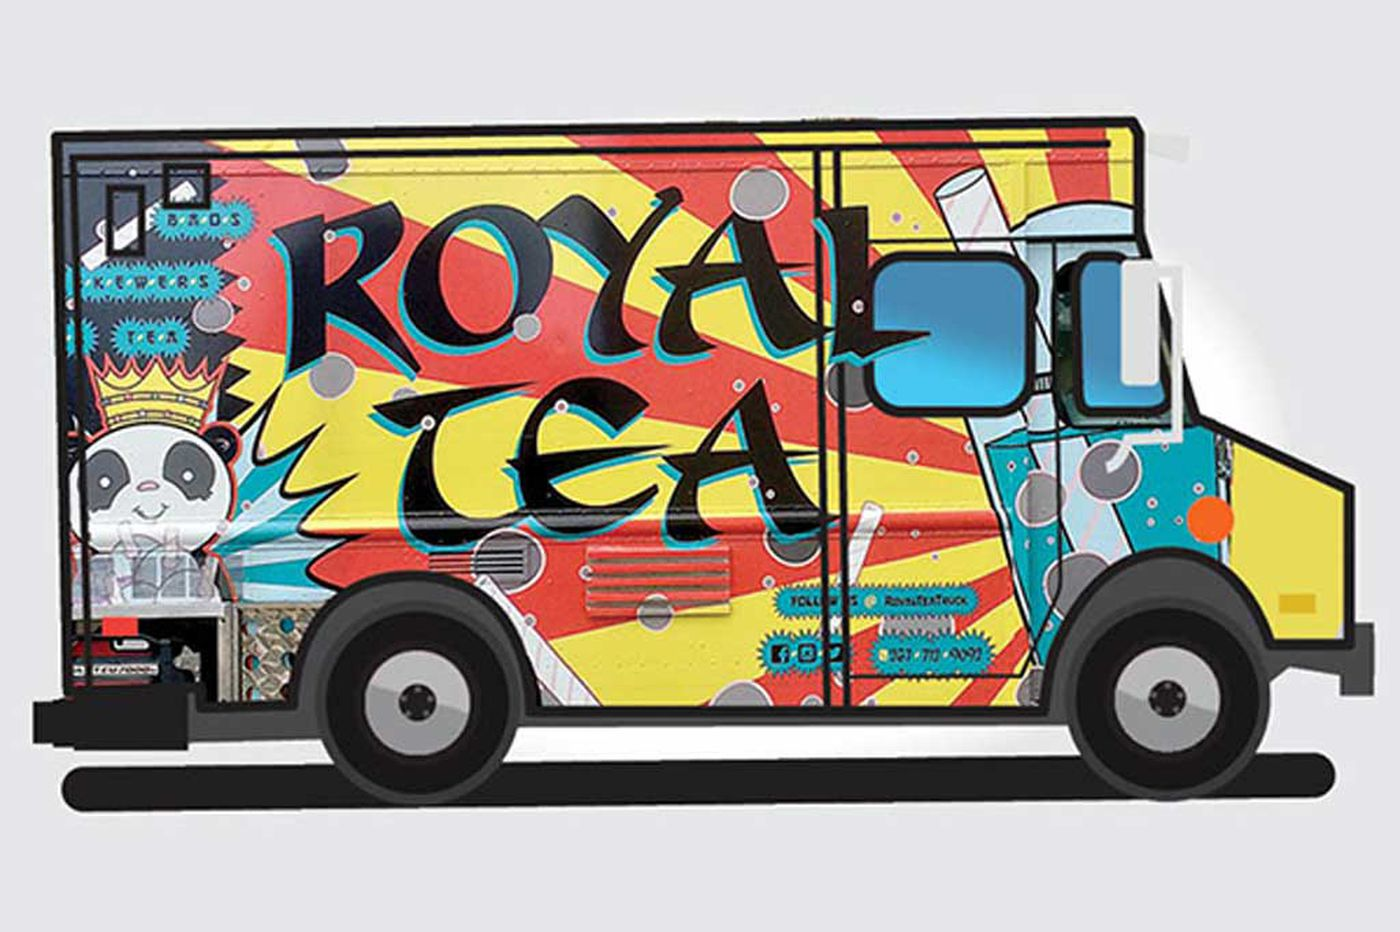 Truck Stop: Drexel's bubblicious Royal Tea